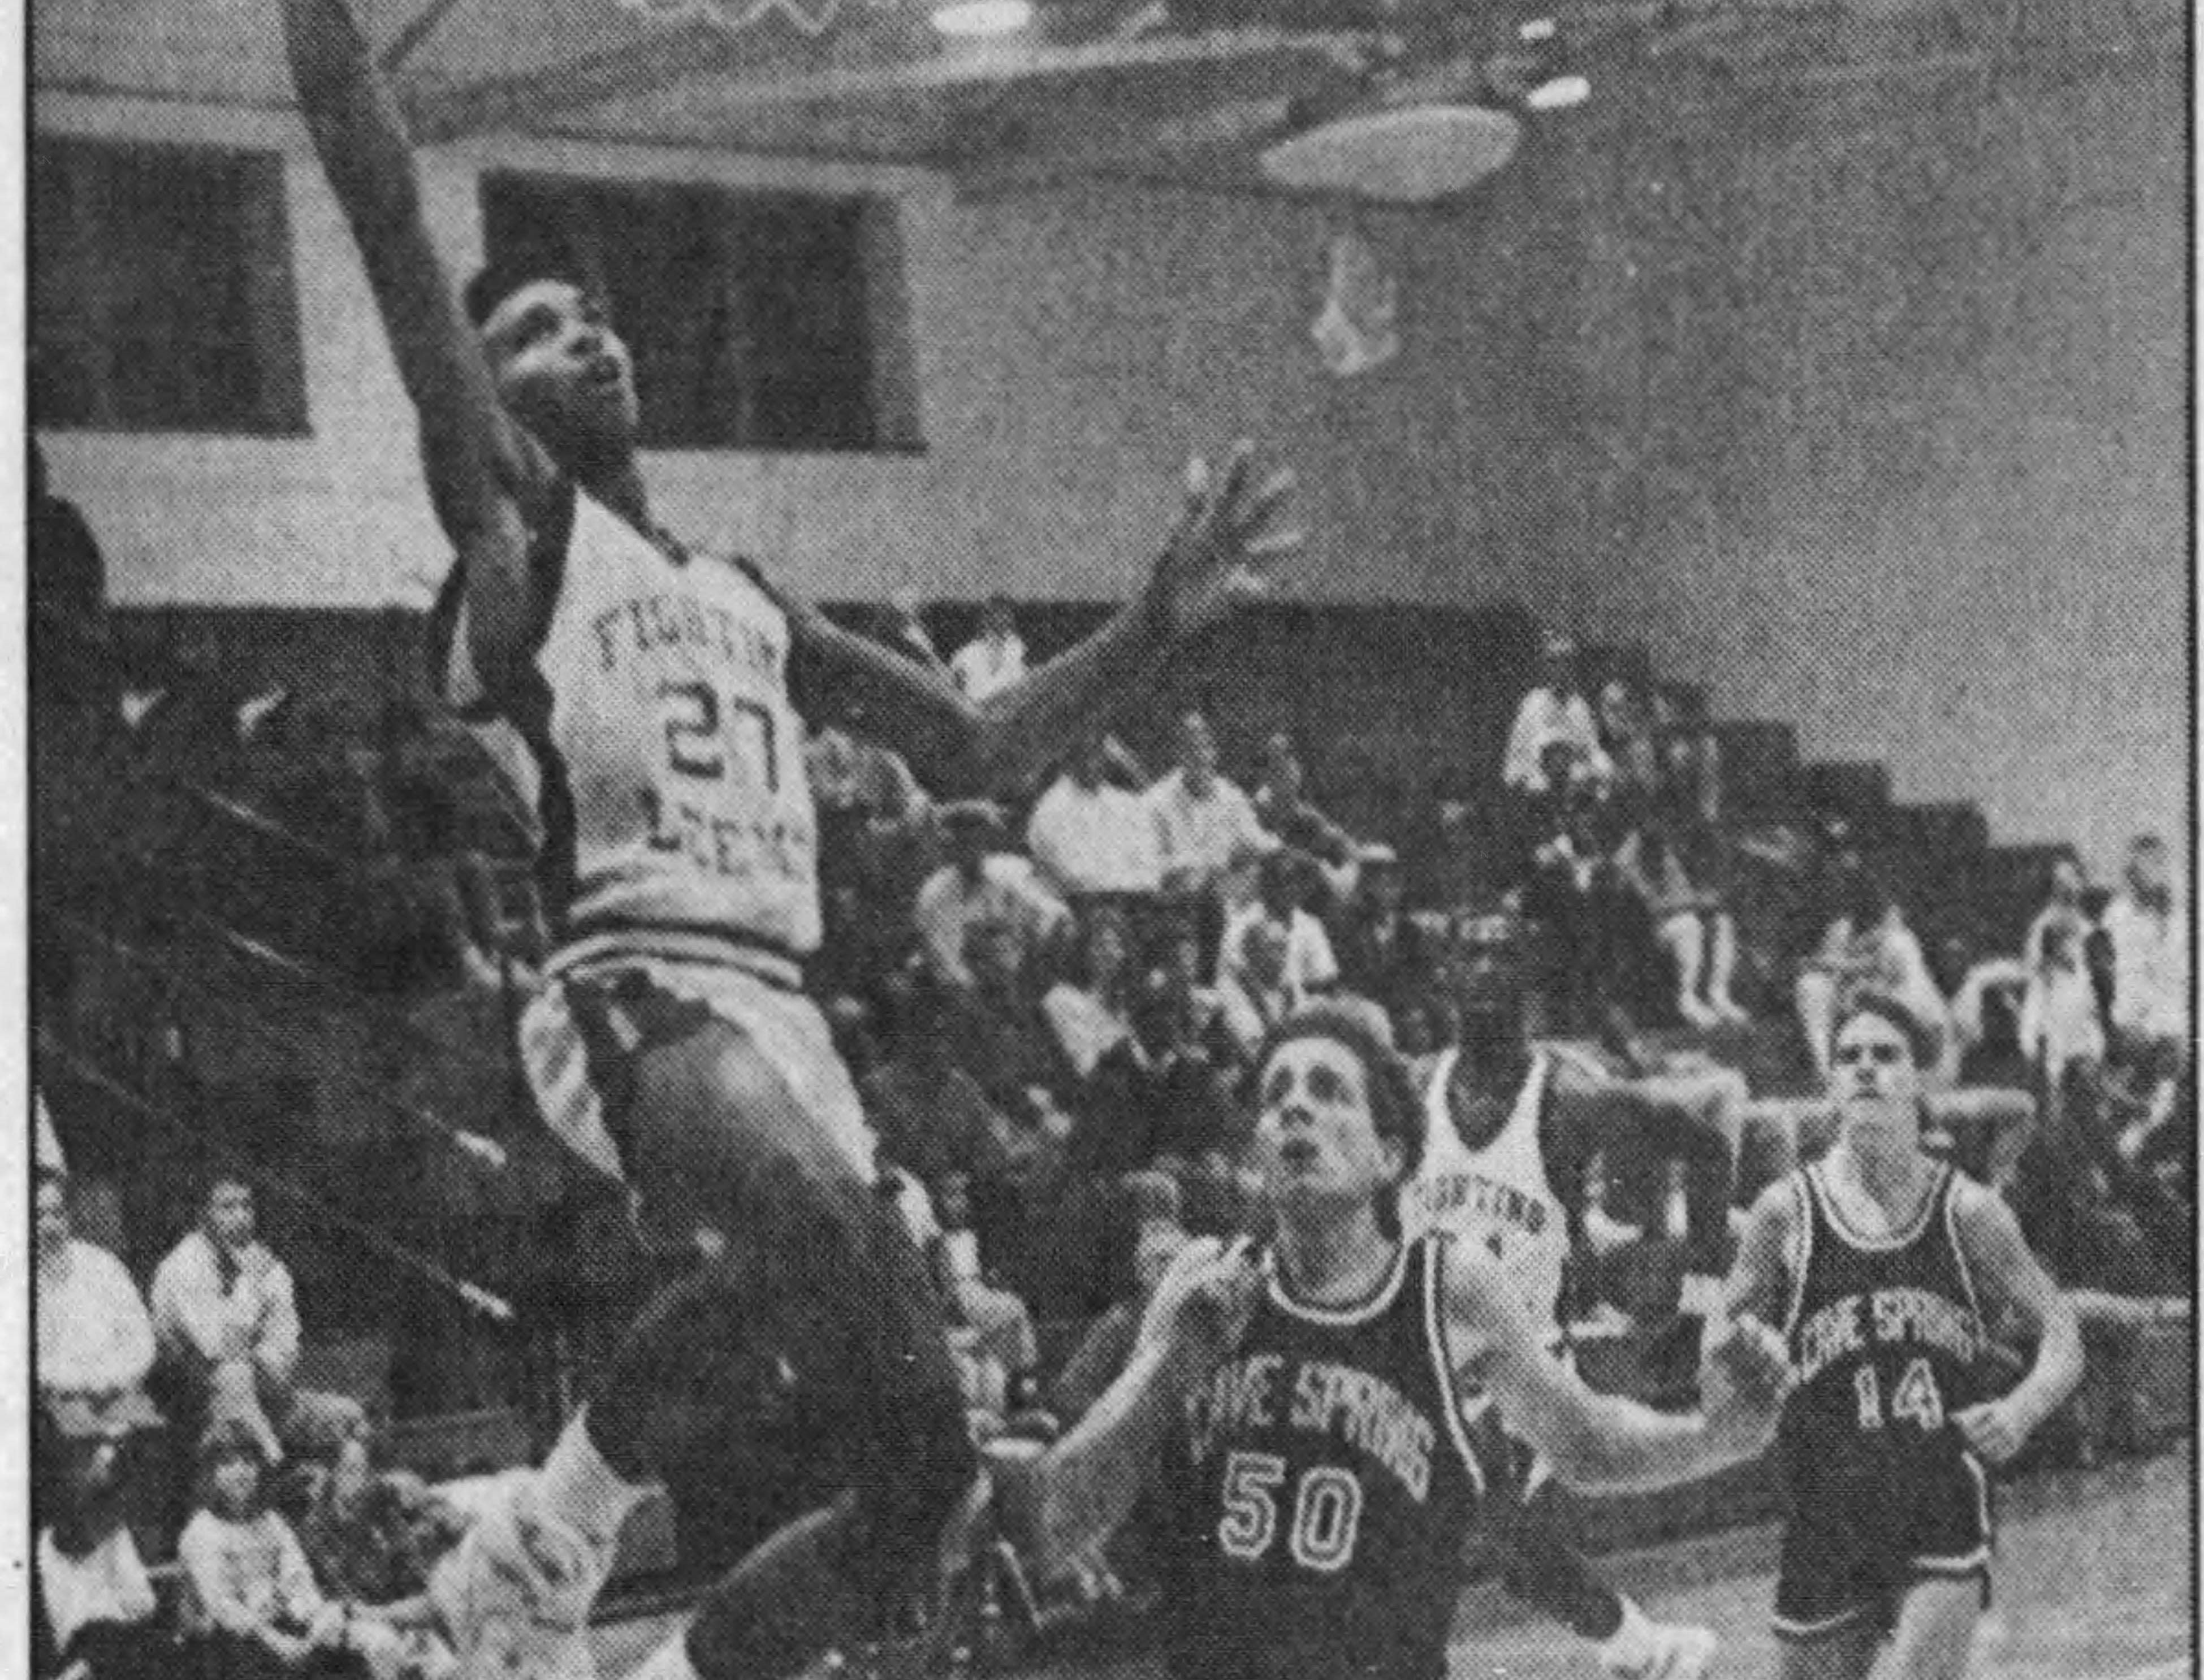 Keith Scott takes the ball to the basket during a 1989 Lee High game against Cave Spring.